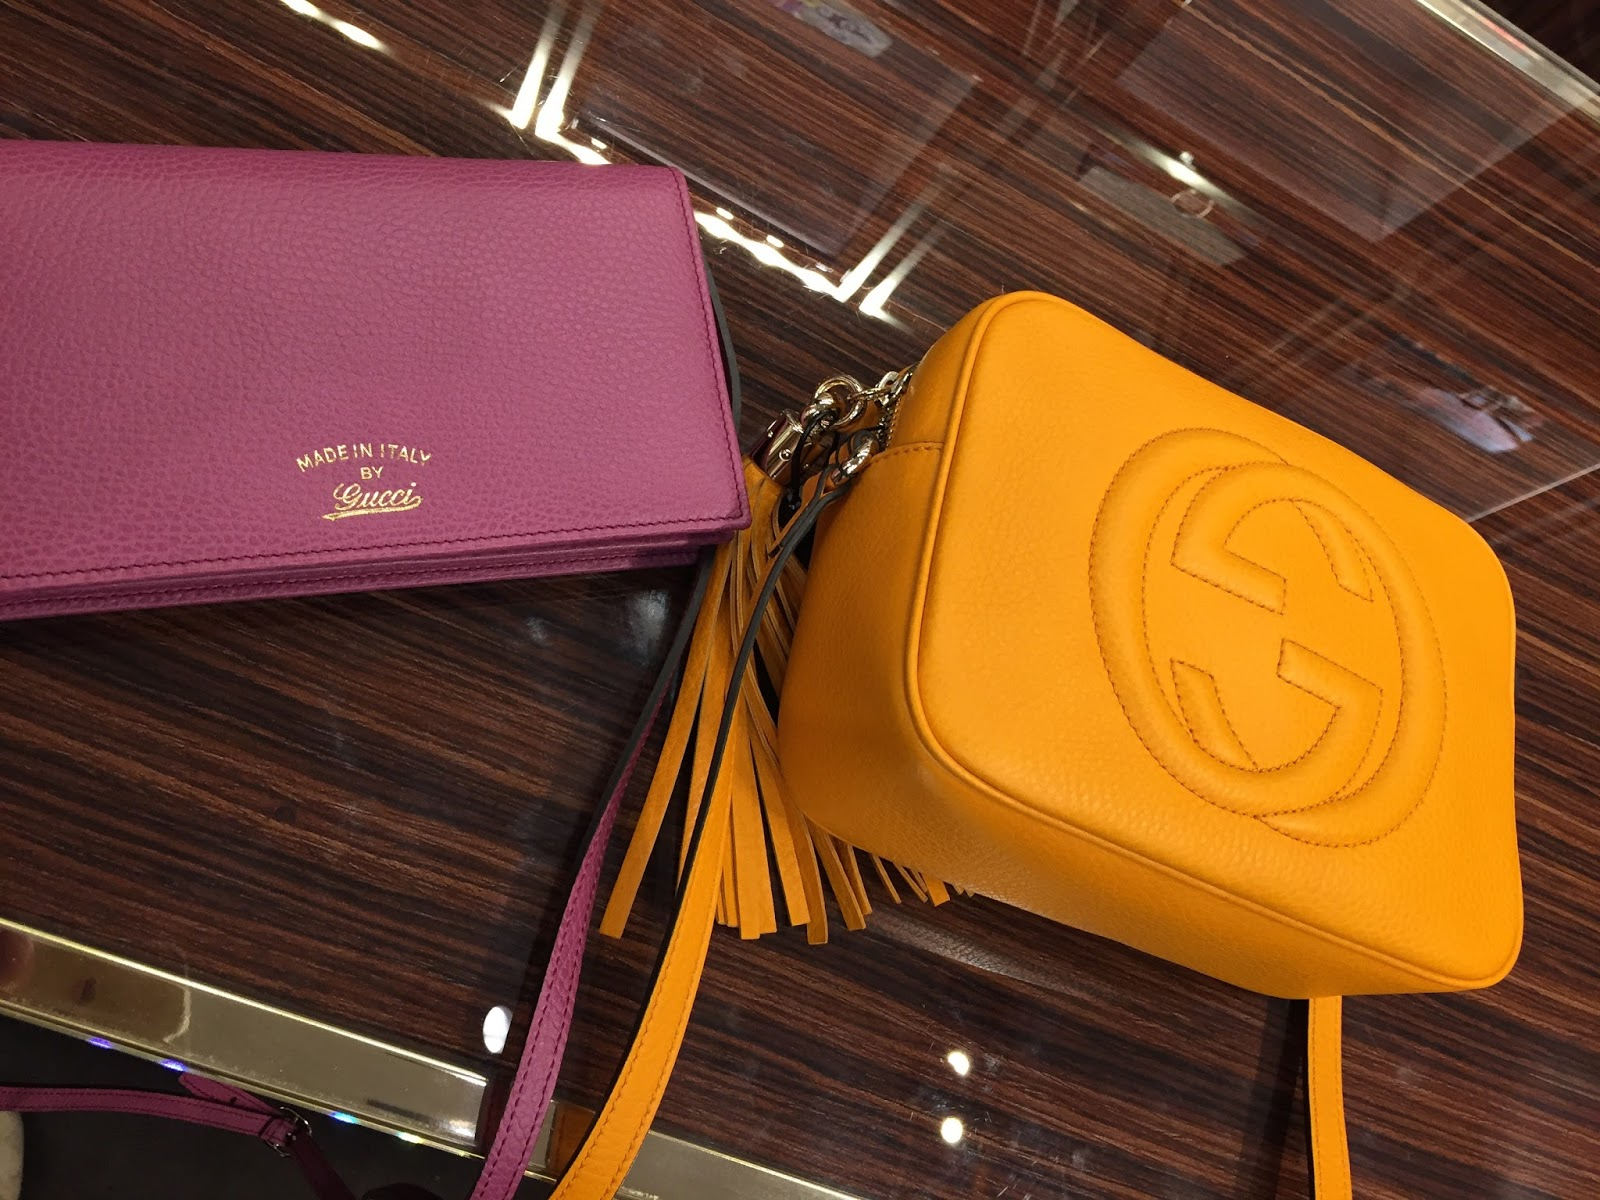 Gucci At Westfield These Had 40 Off From Memory I Was Very Tempted By The Yellow As It A Cross Body Style Bag My Eye On